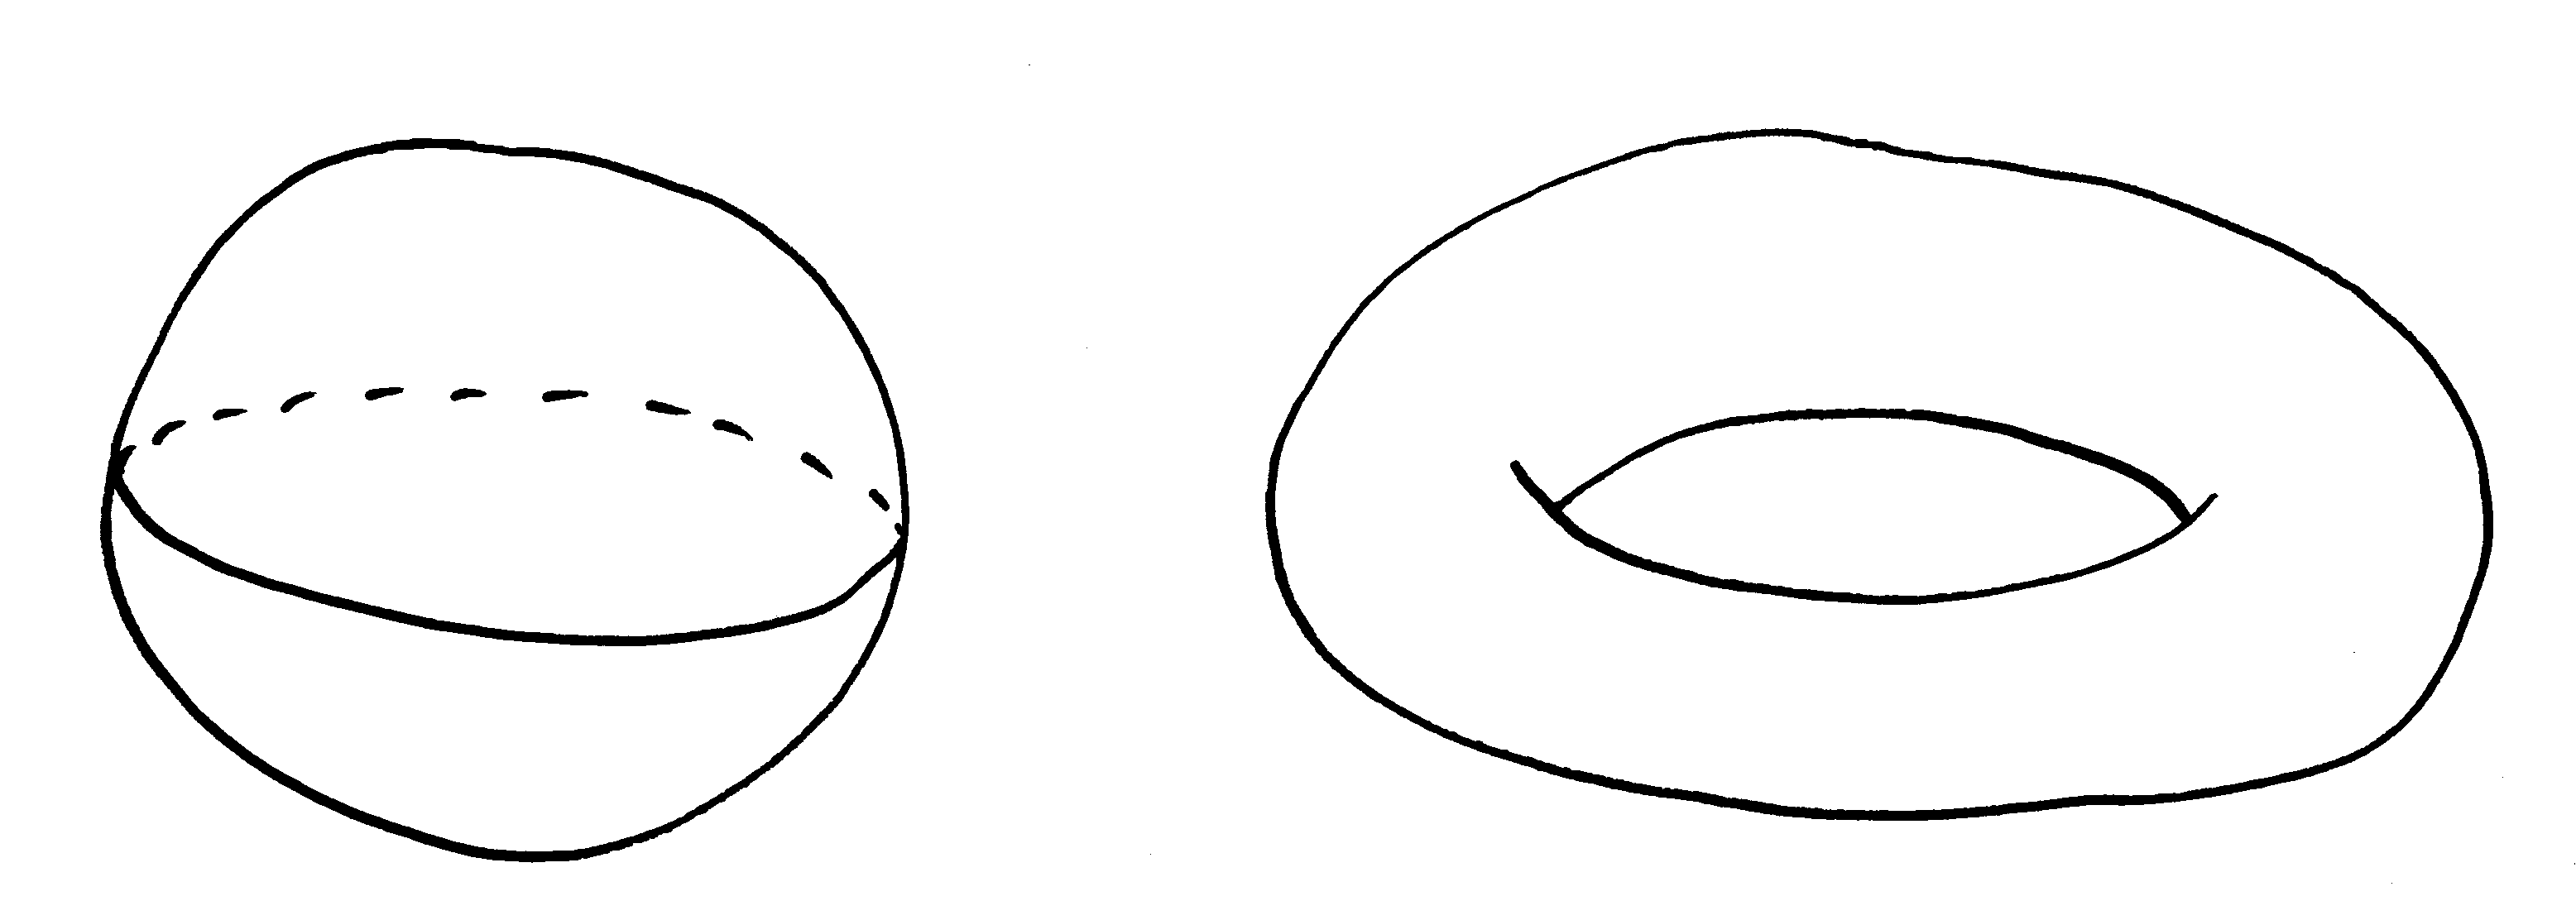 diffgeoIV/sketches/1.png